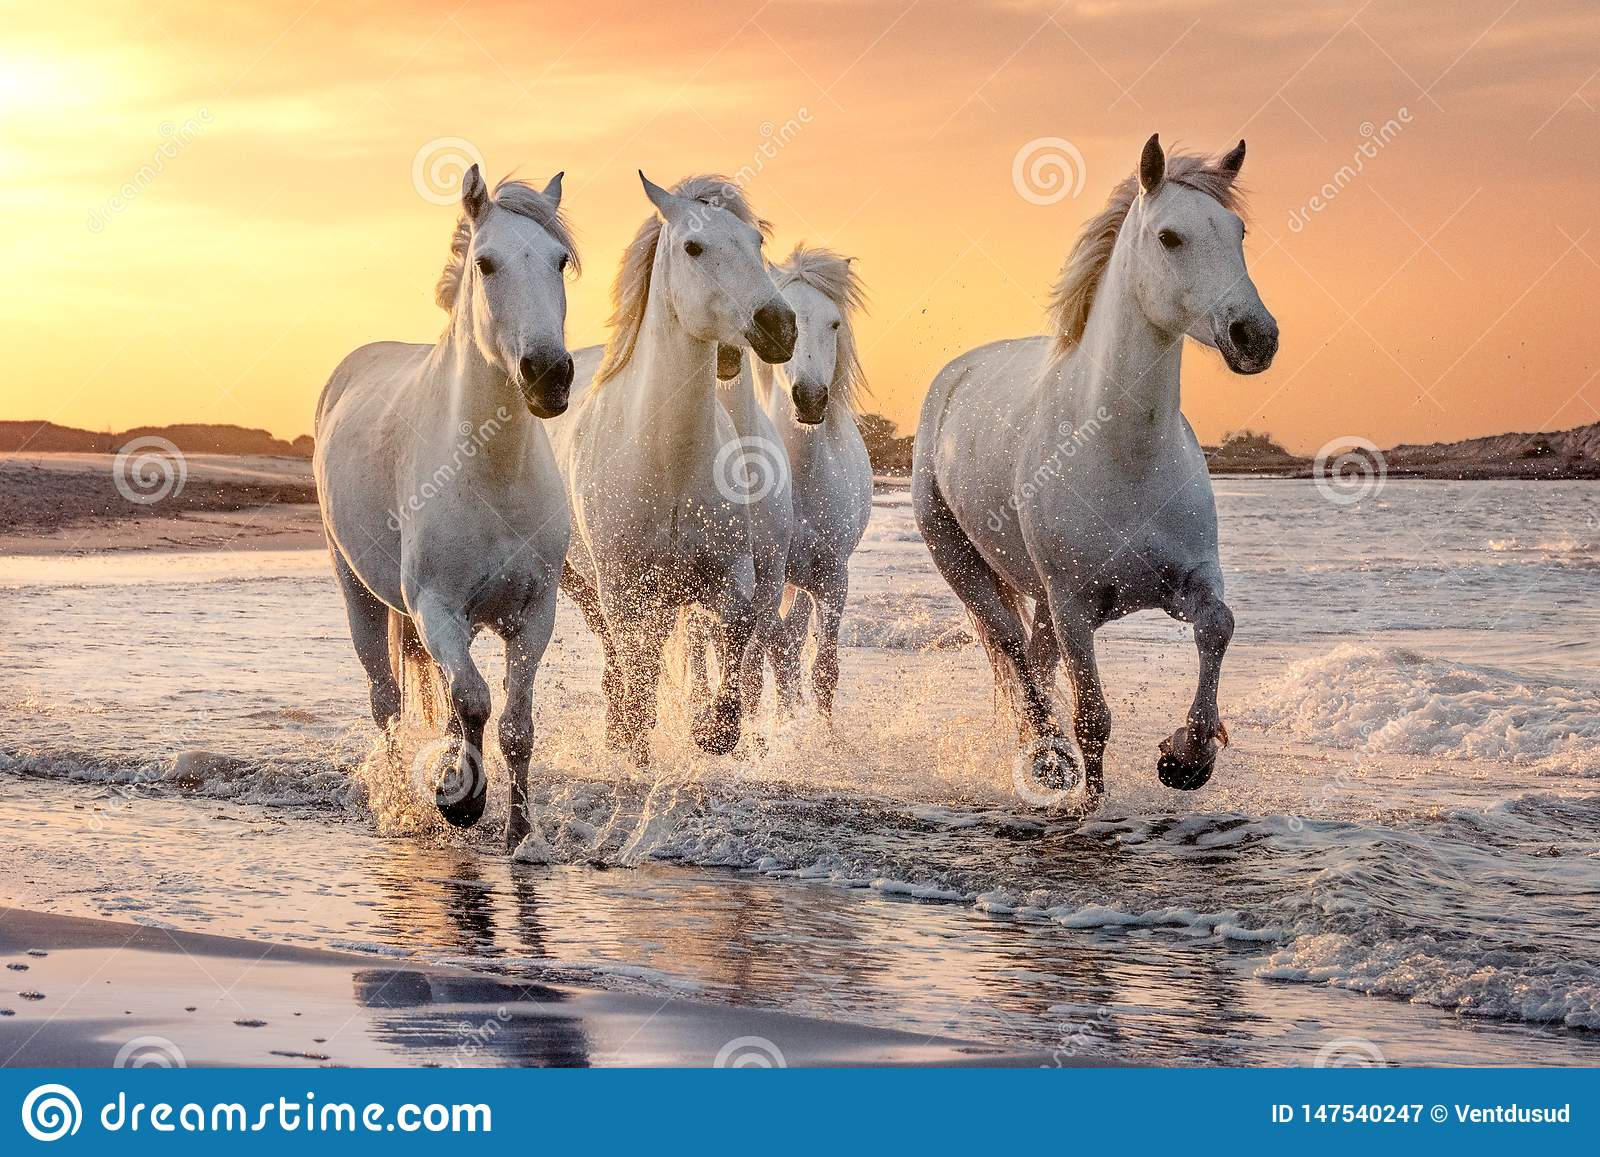 White horses in Camargue, France